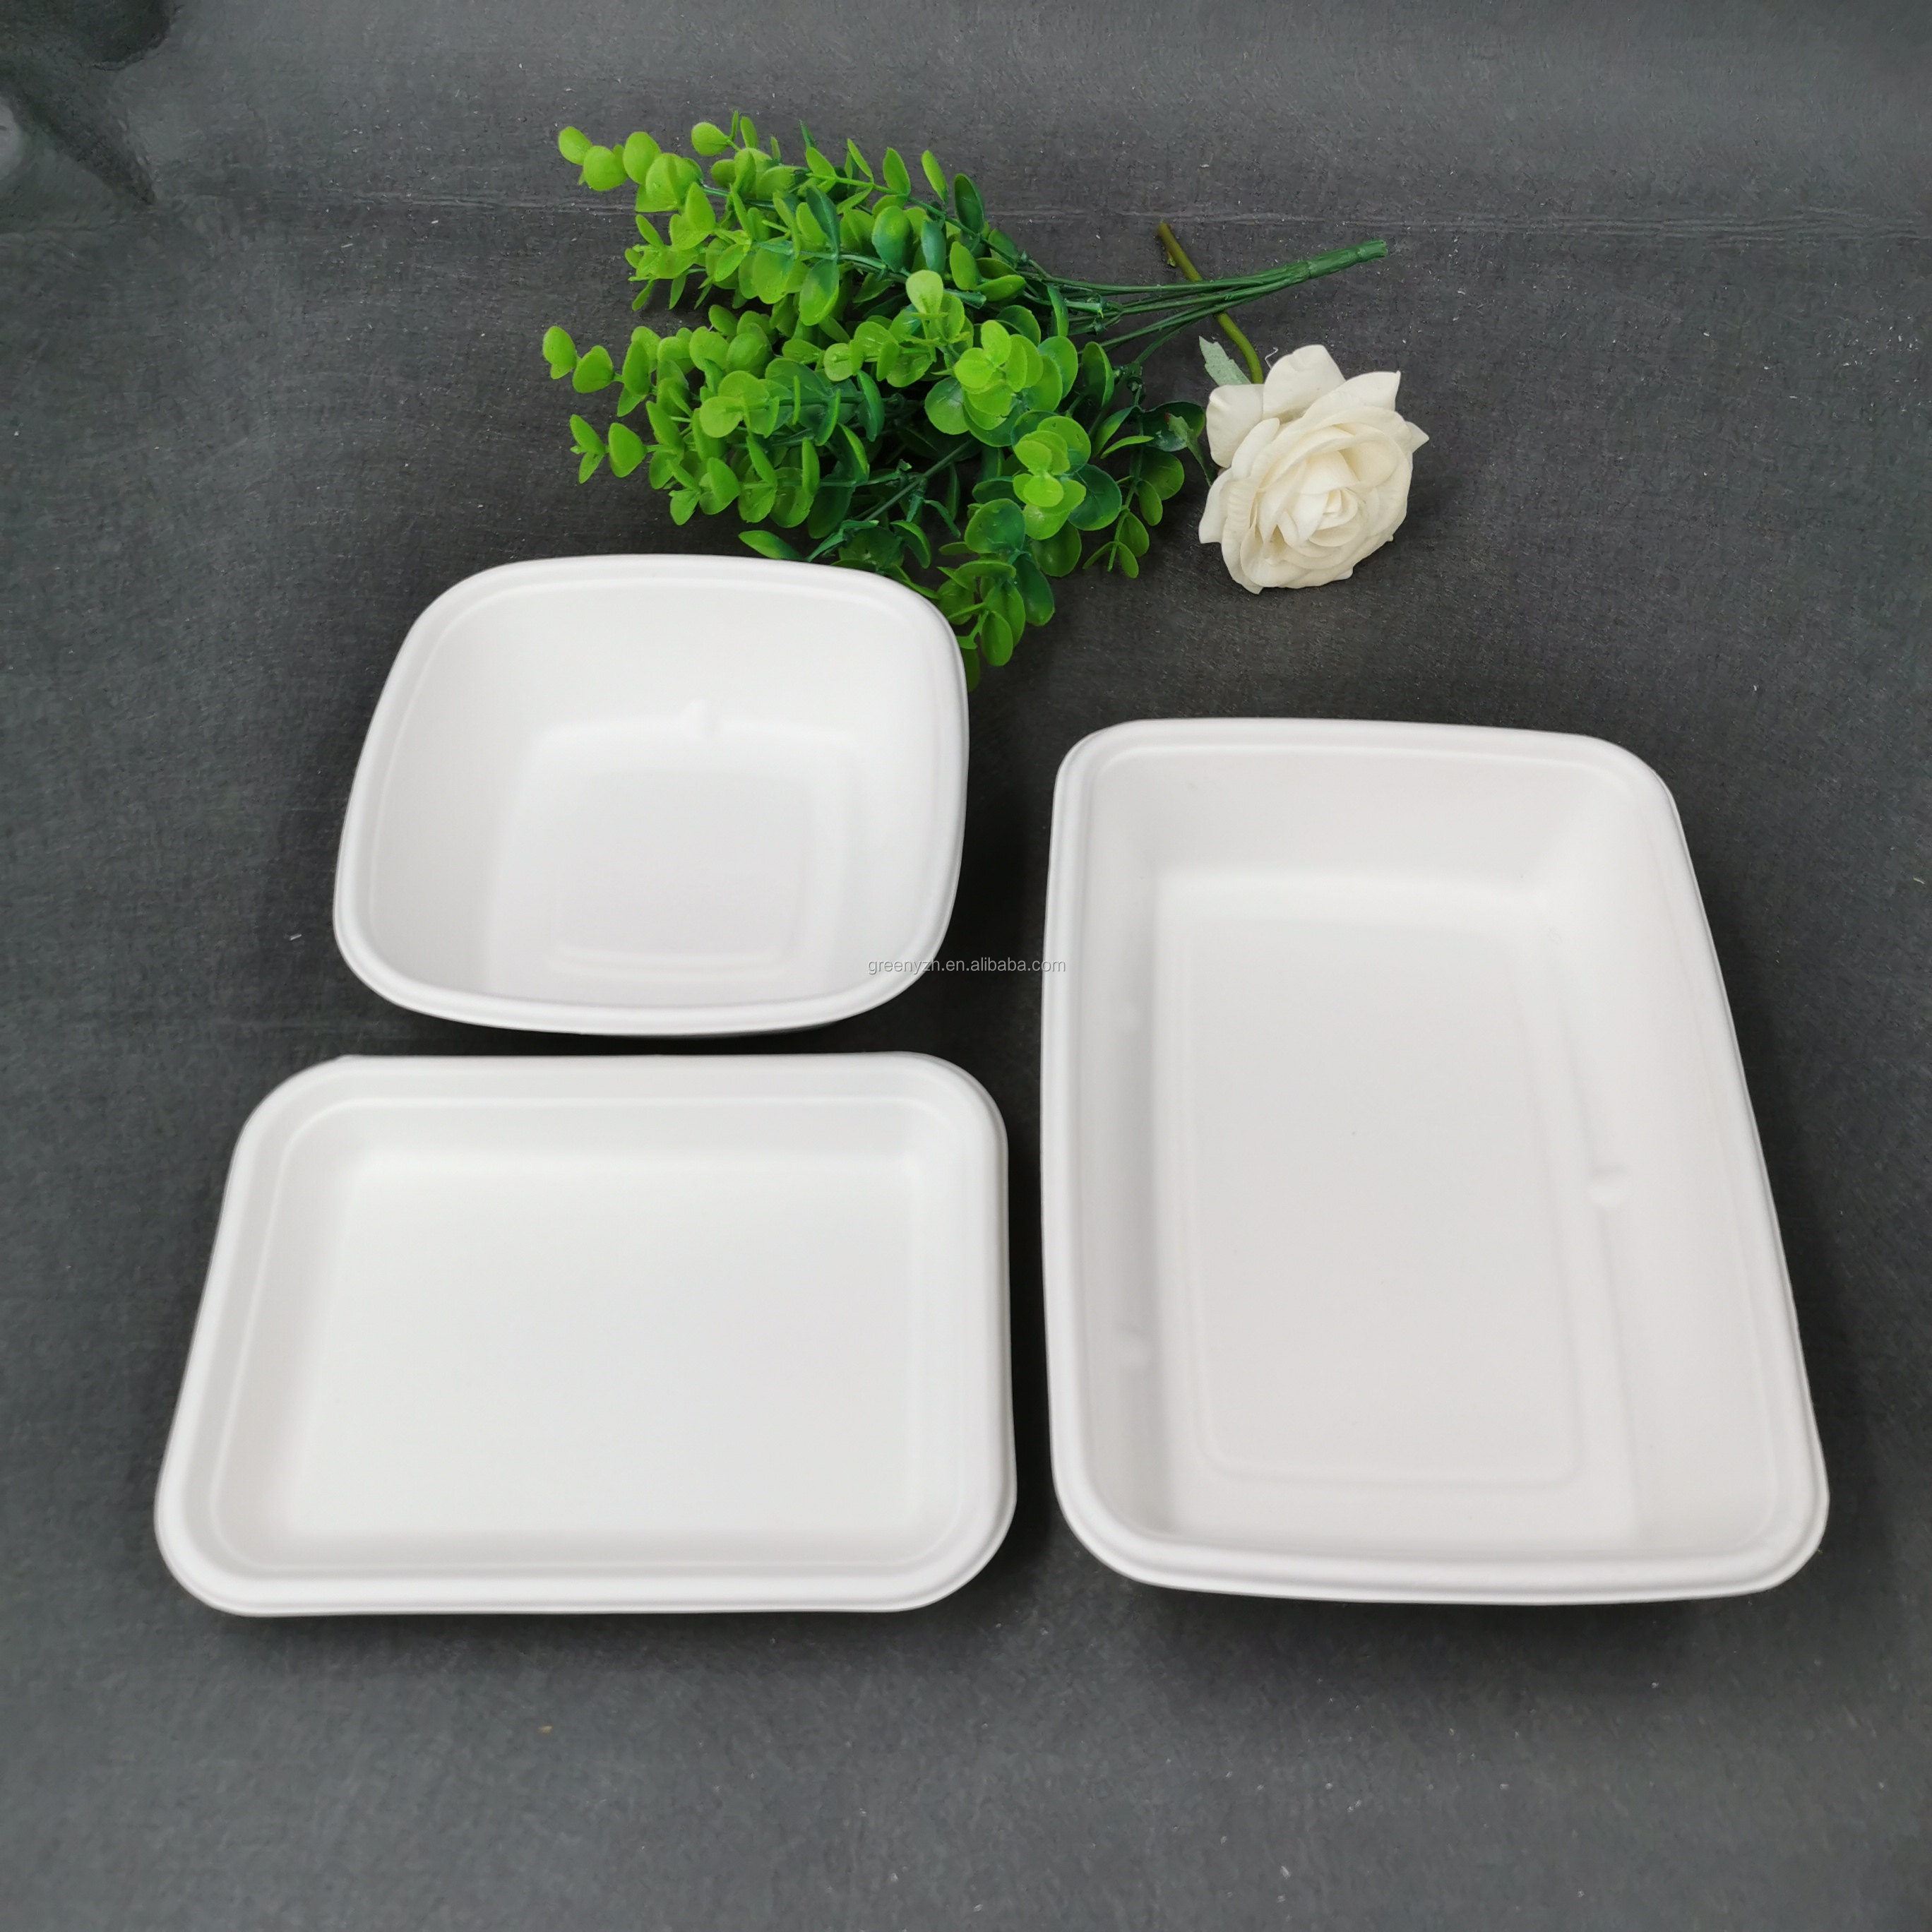 Eco-friendly bamboo pulp 100% compostable and biodegradable Supermarkets Vegetable and fruit meat tray dish